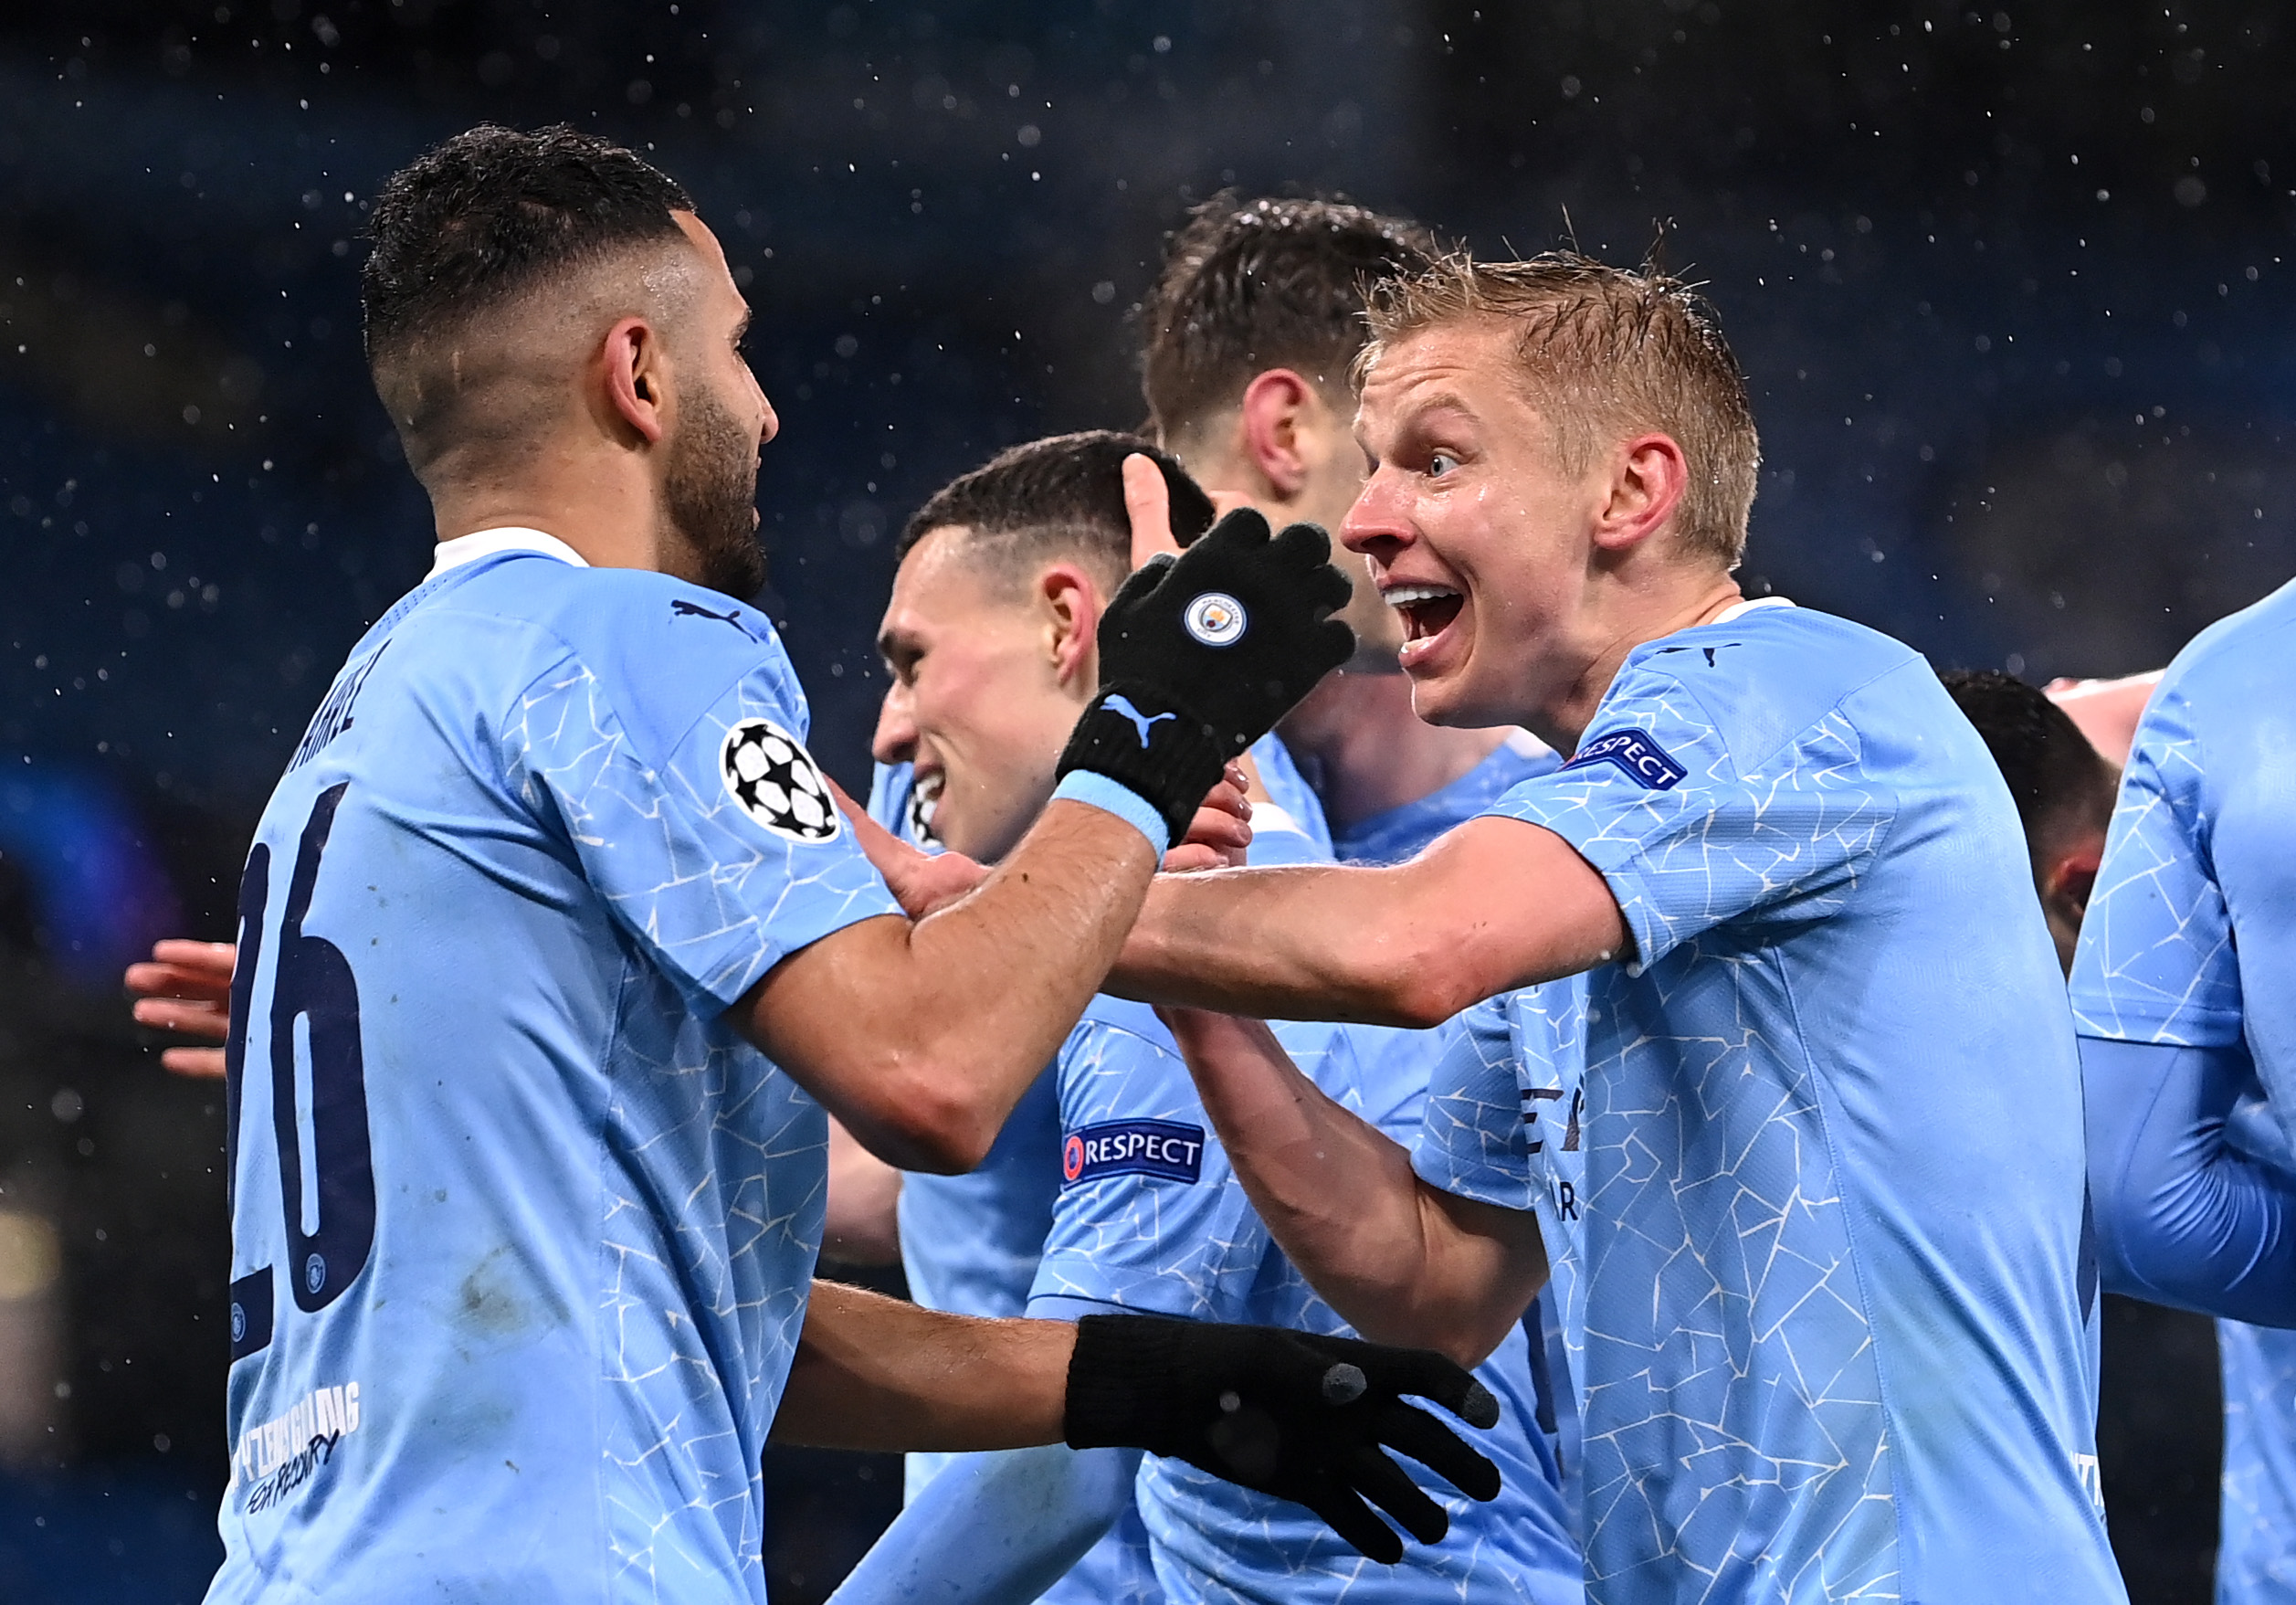 Manchester City cracks code to reach first Champions League final after brushing aside Paris Saint-Germain